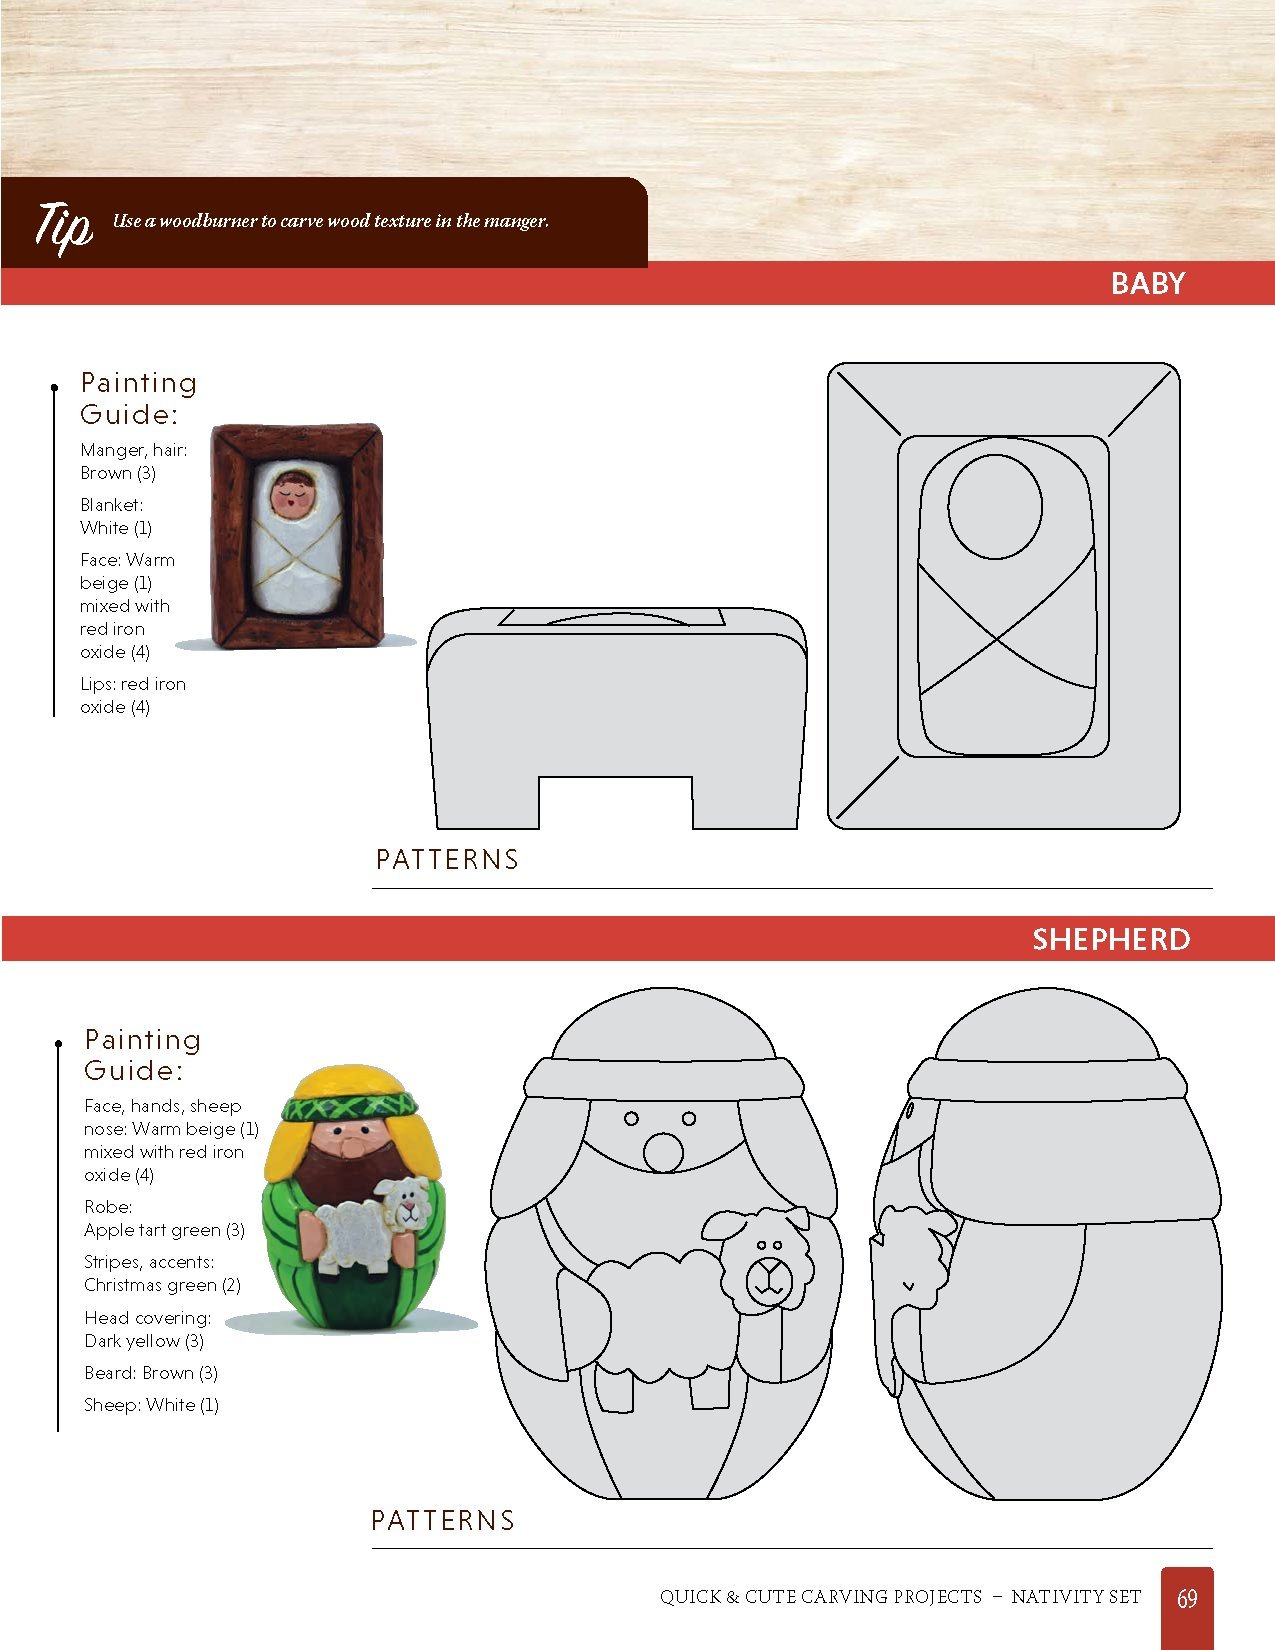 Quick Cute Carving Projects Patterns For 46 Projects To Carve In